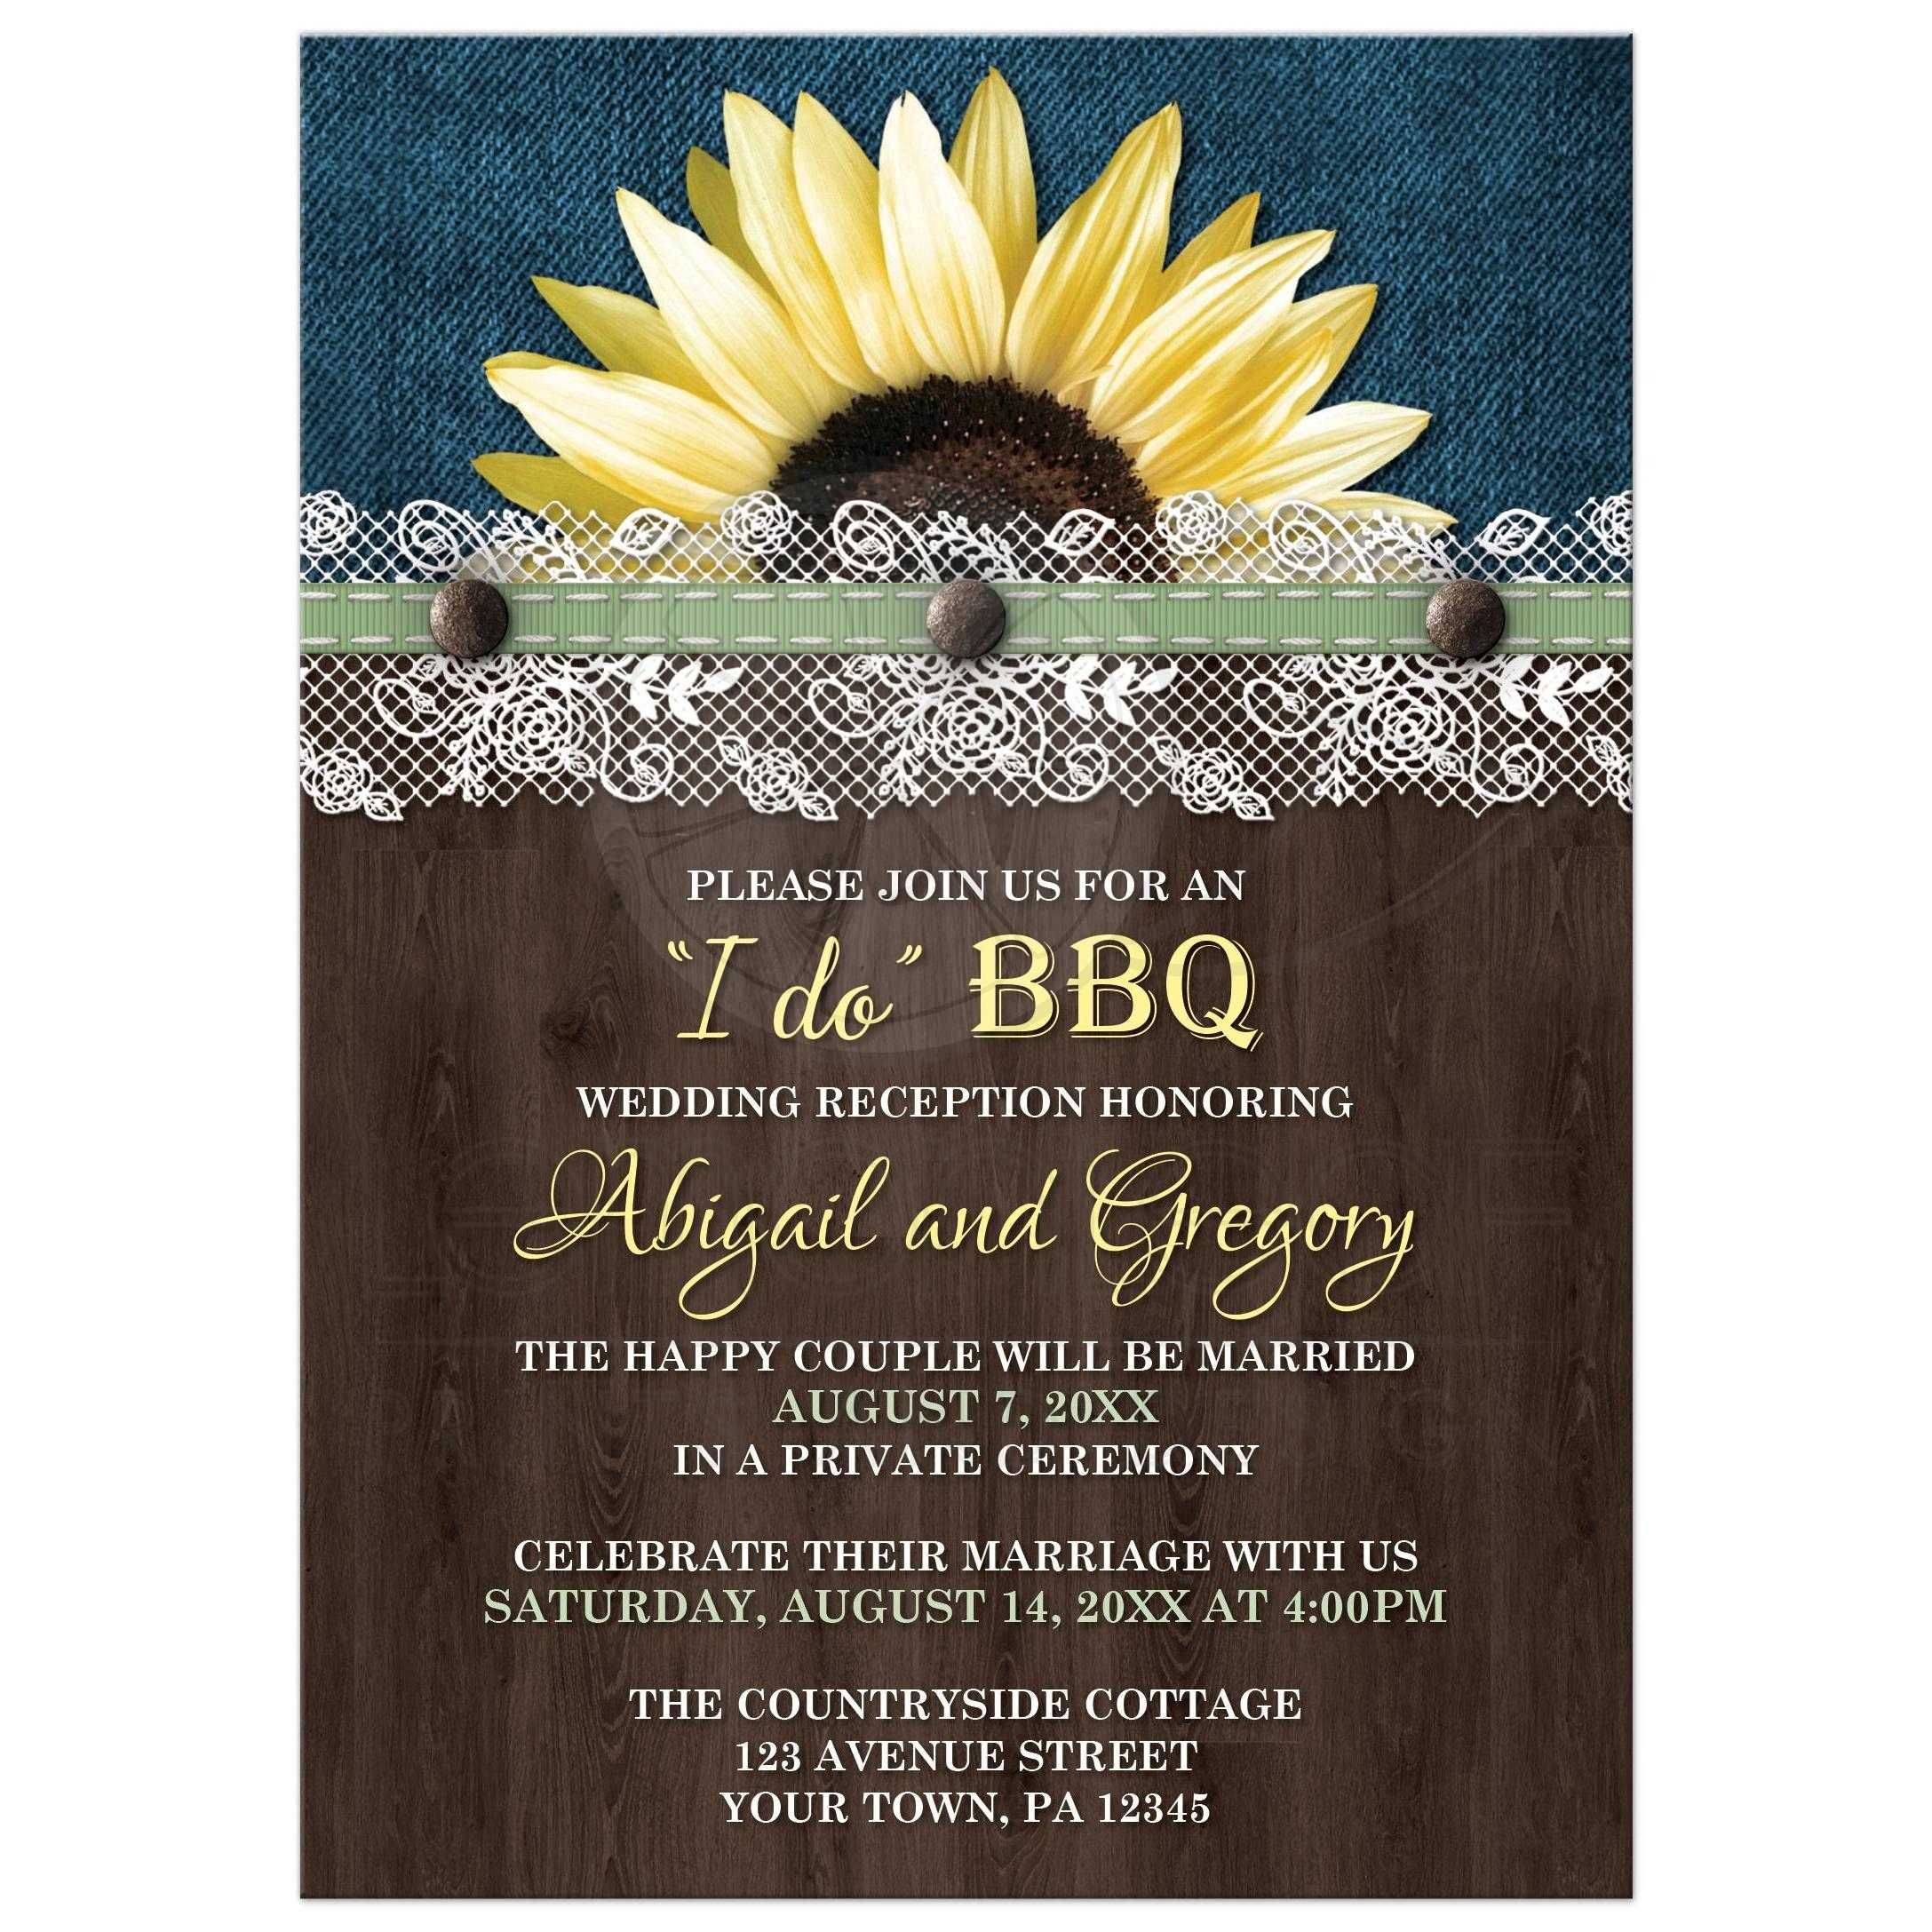 Reception Only Invitations - Sunflower Denim Wood Lace I Do BBQ ...